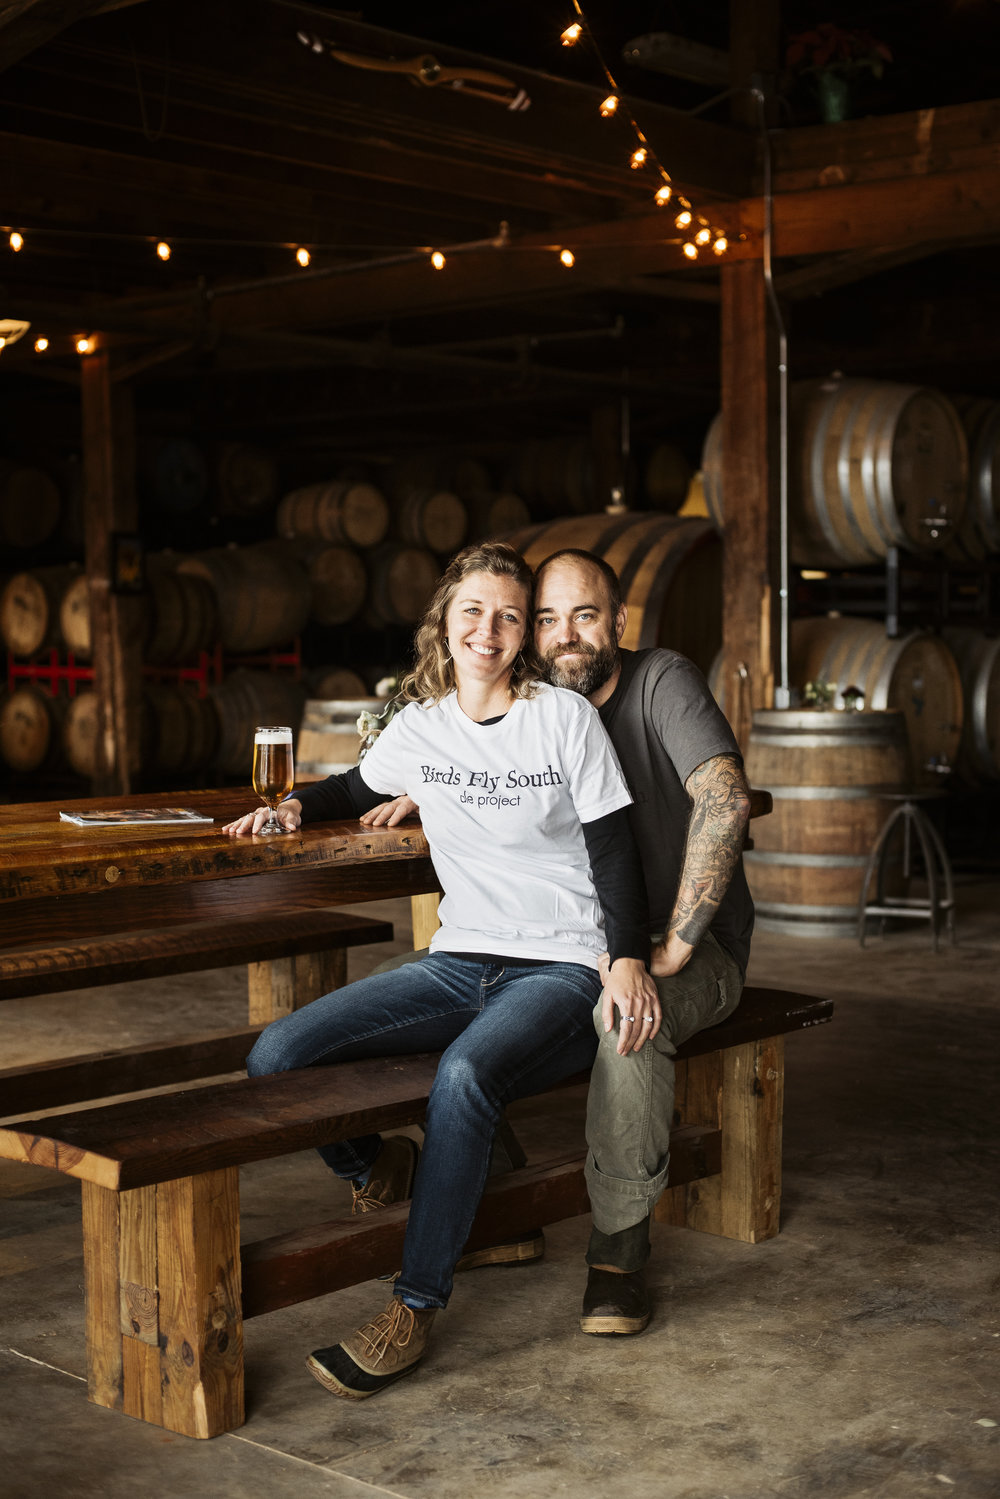 Shawn & Lindsay Johnson of Birds Fly South Ale Project for Beer Advocate